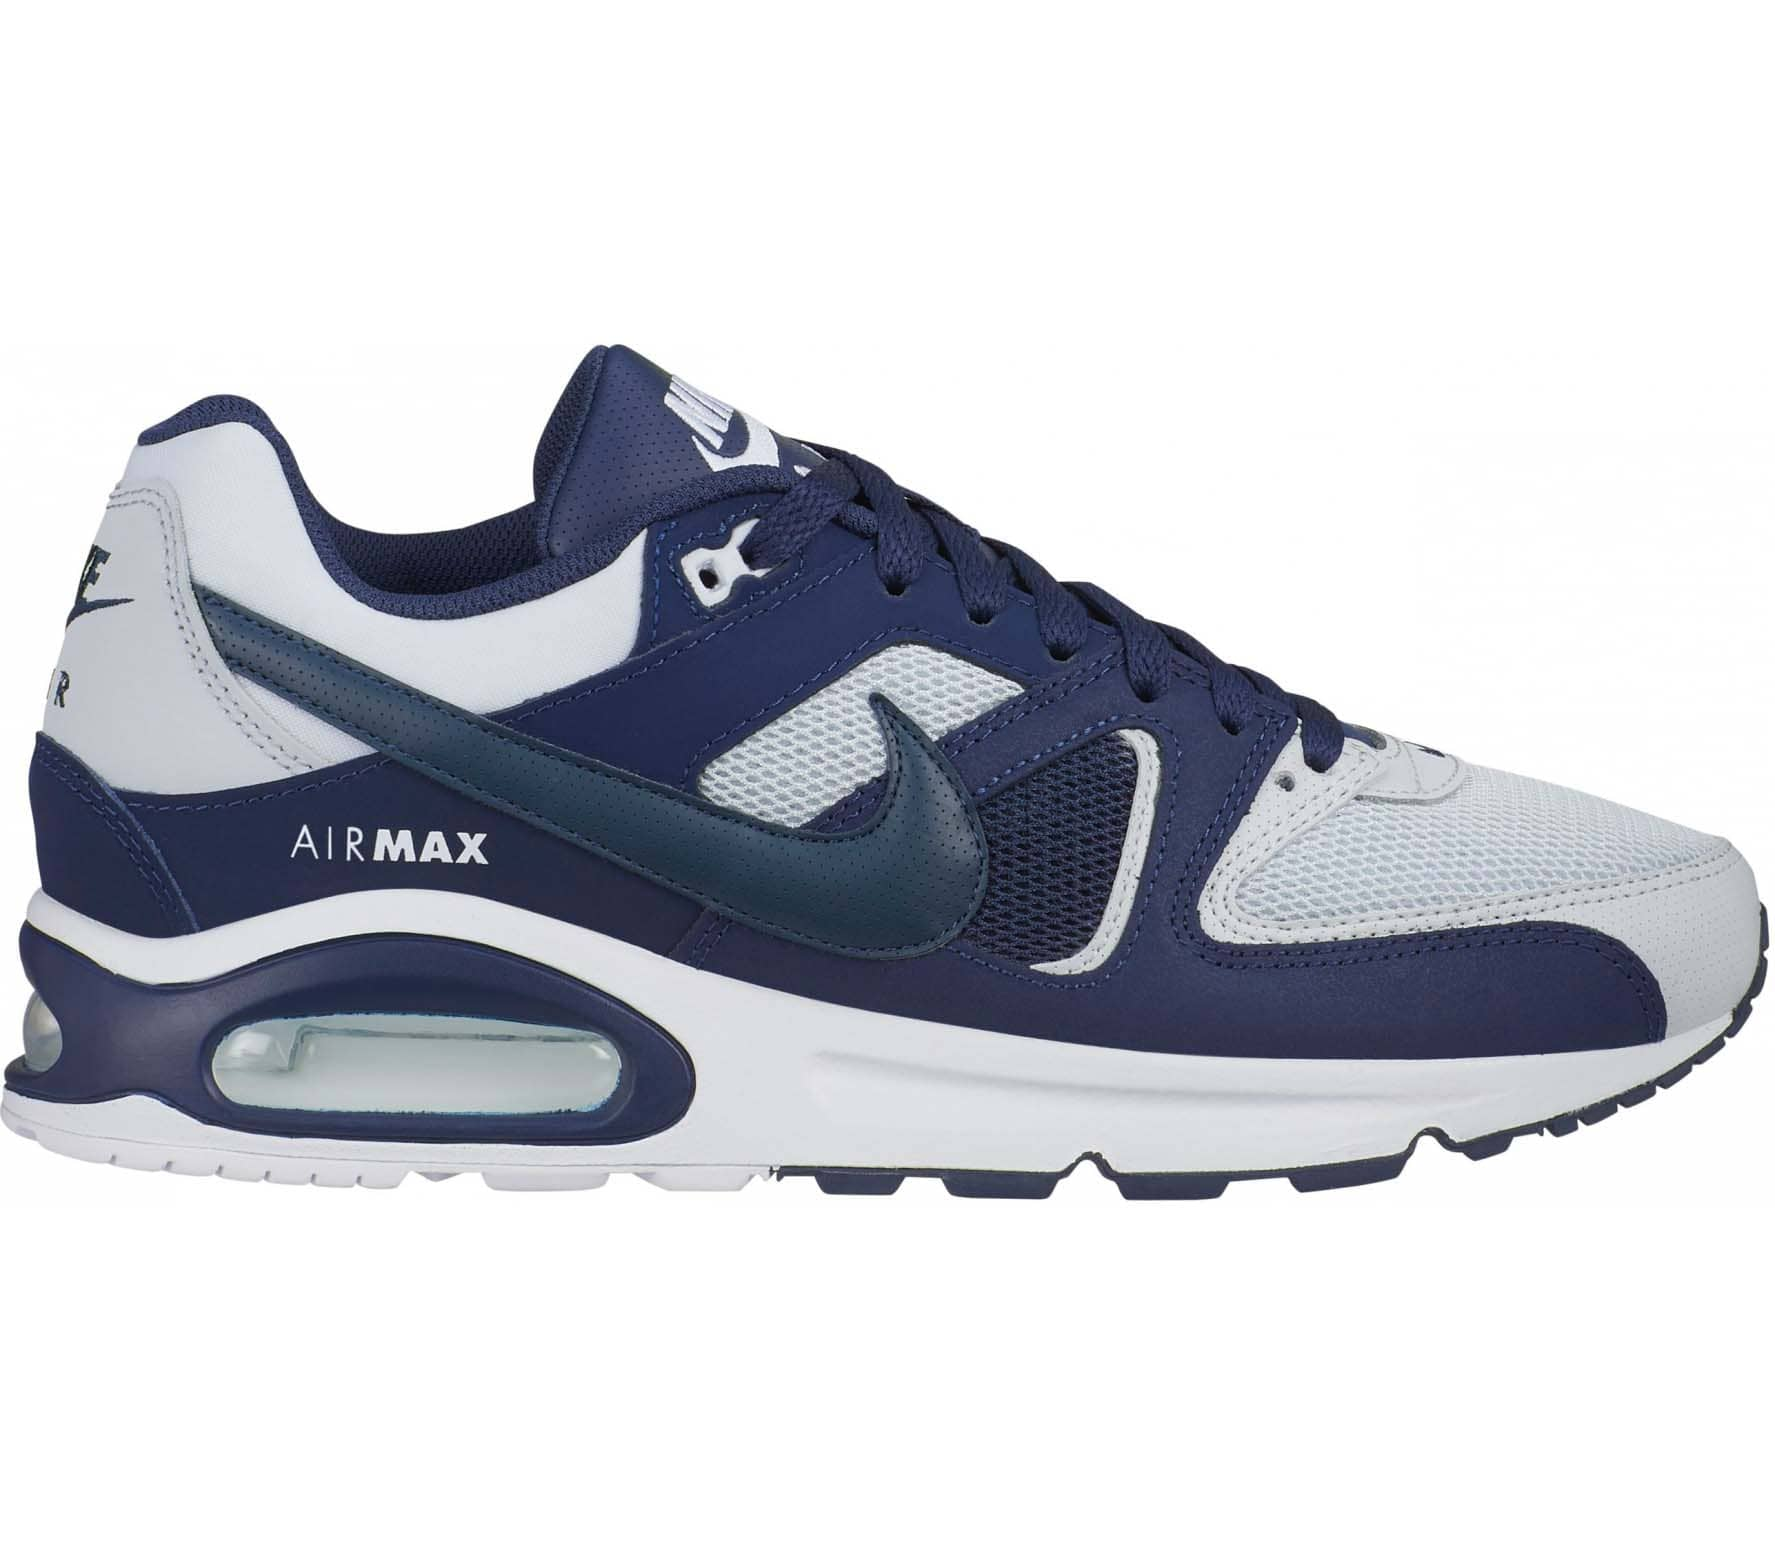 meilleures baskets 24324 68330 Nike Air Max Command men's sneaker Men